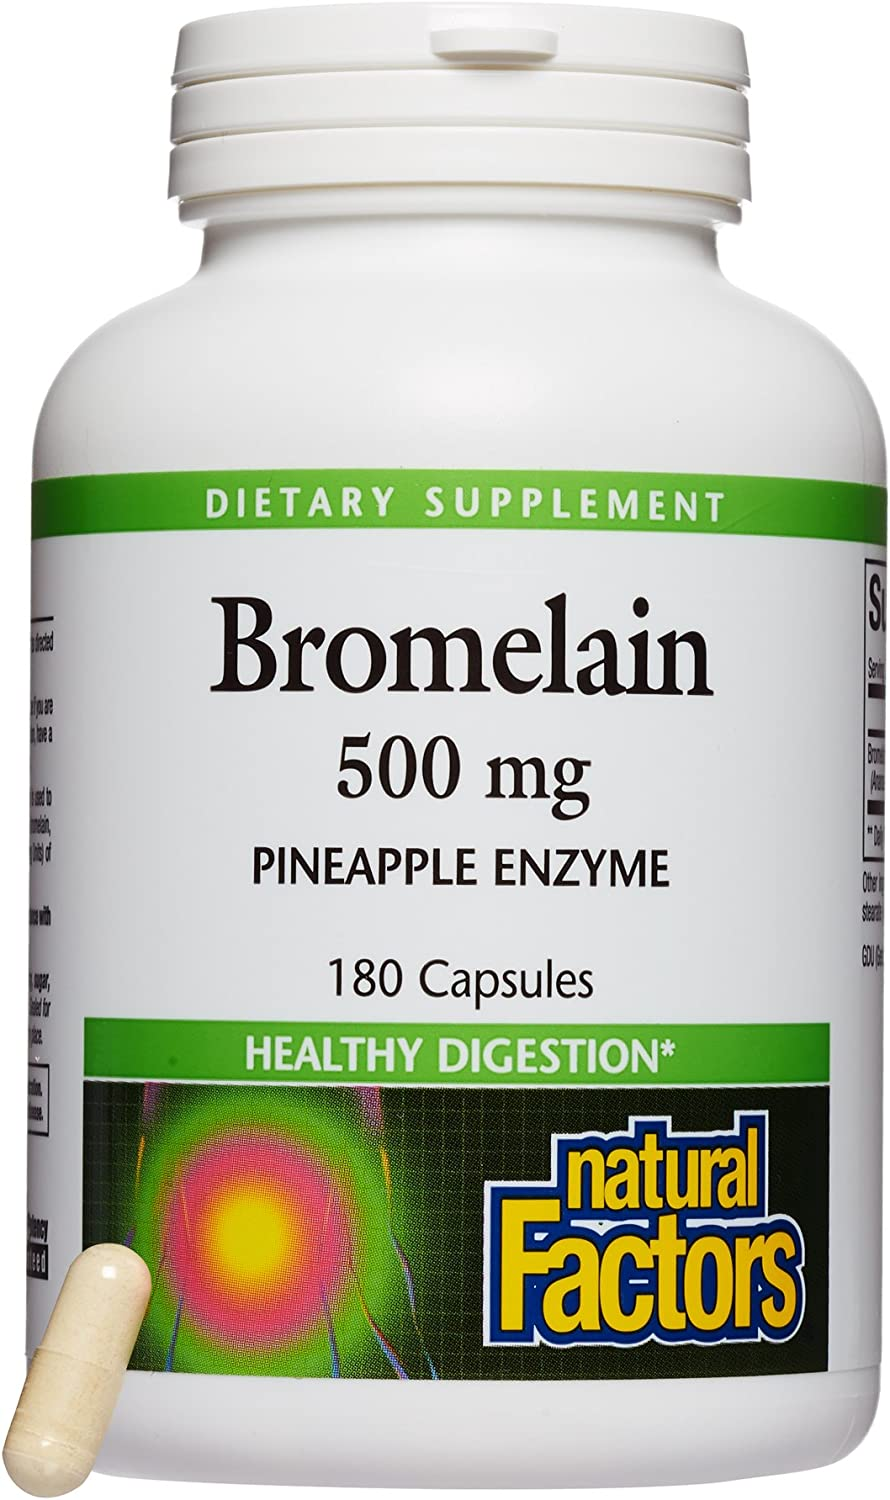 Natural Factors, Bromelain 500 mg, Enzyme Support for a Healthy Digestive System, 180 capsules (180 servings): Health & Personal Care